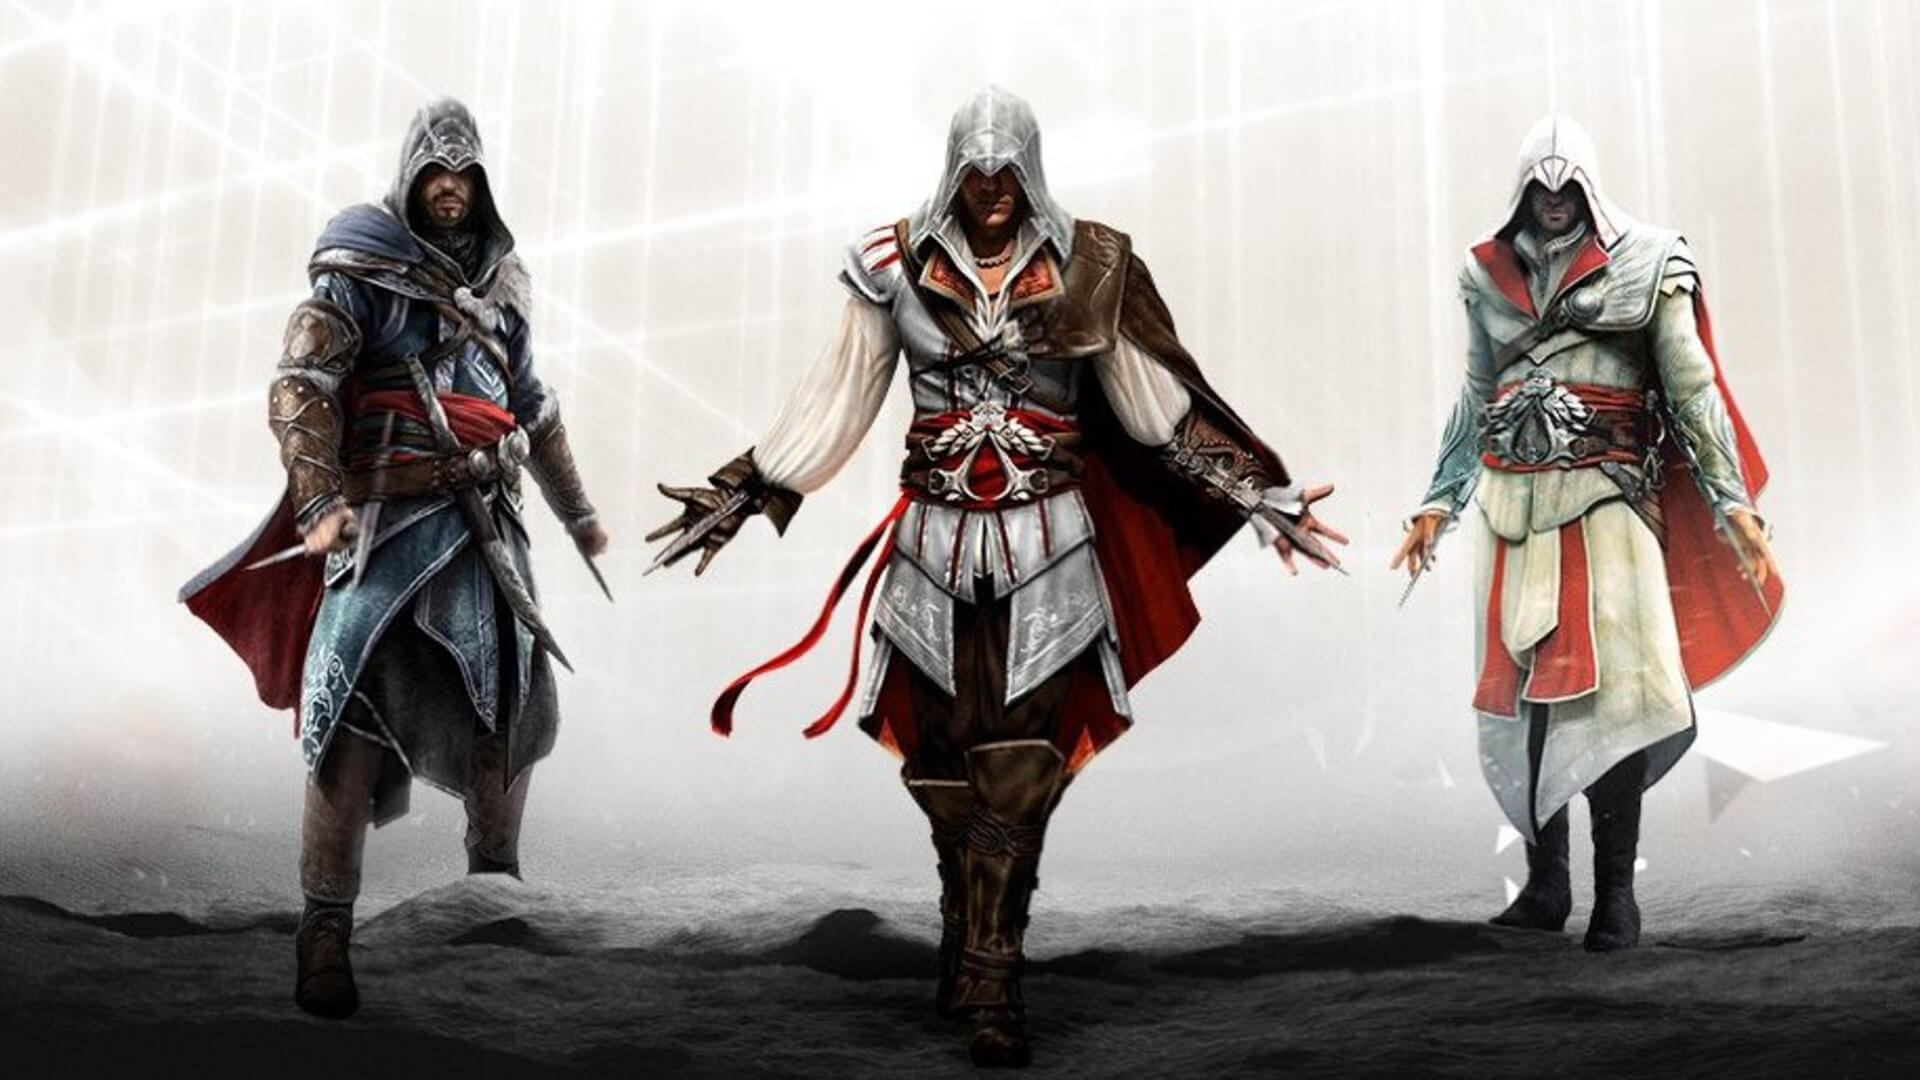 Assassin S Creed The Ezio Collection For Ps4 Xb1 Reviews Opencritic